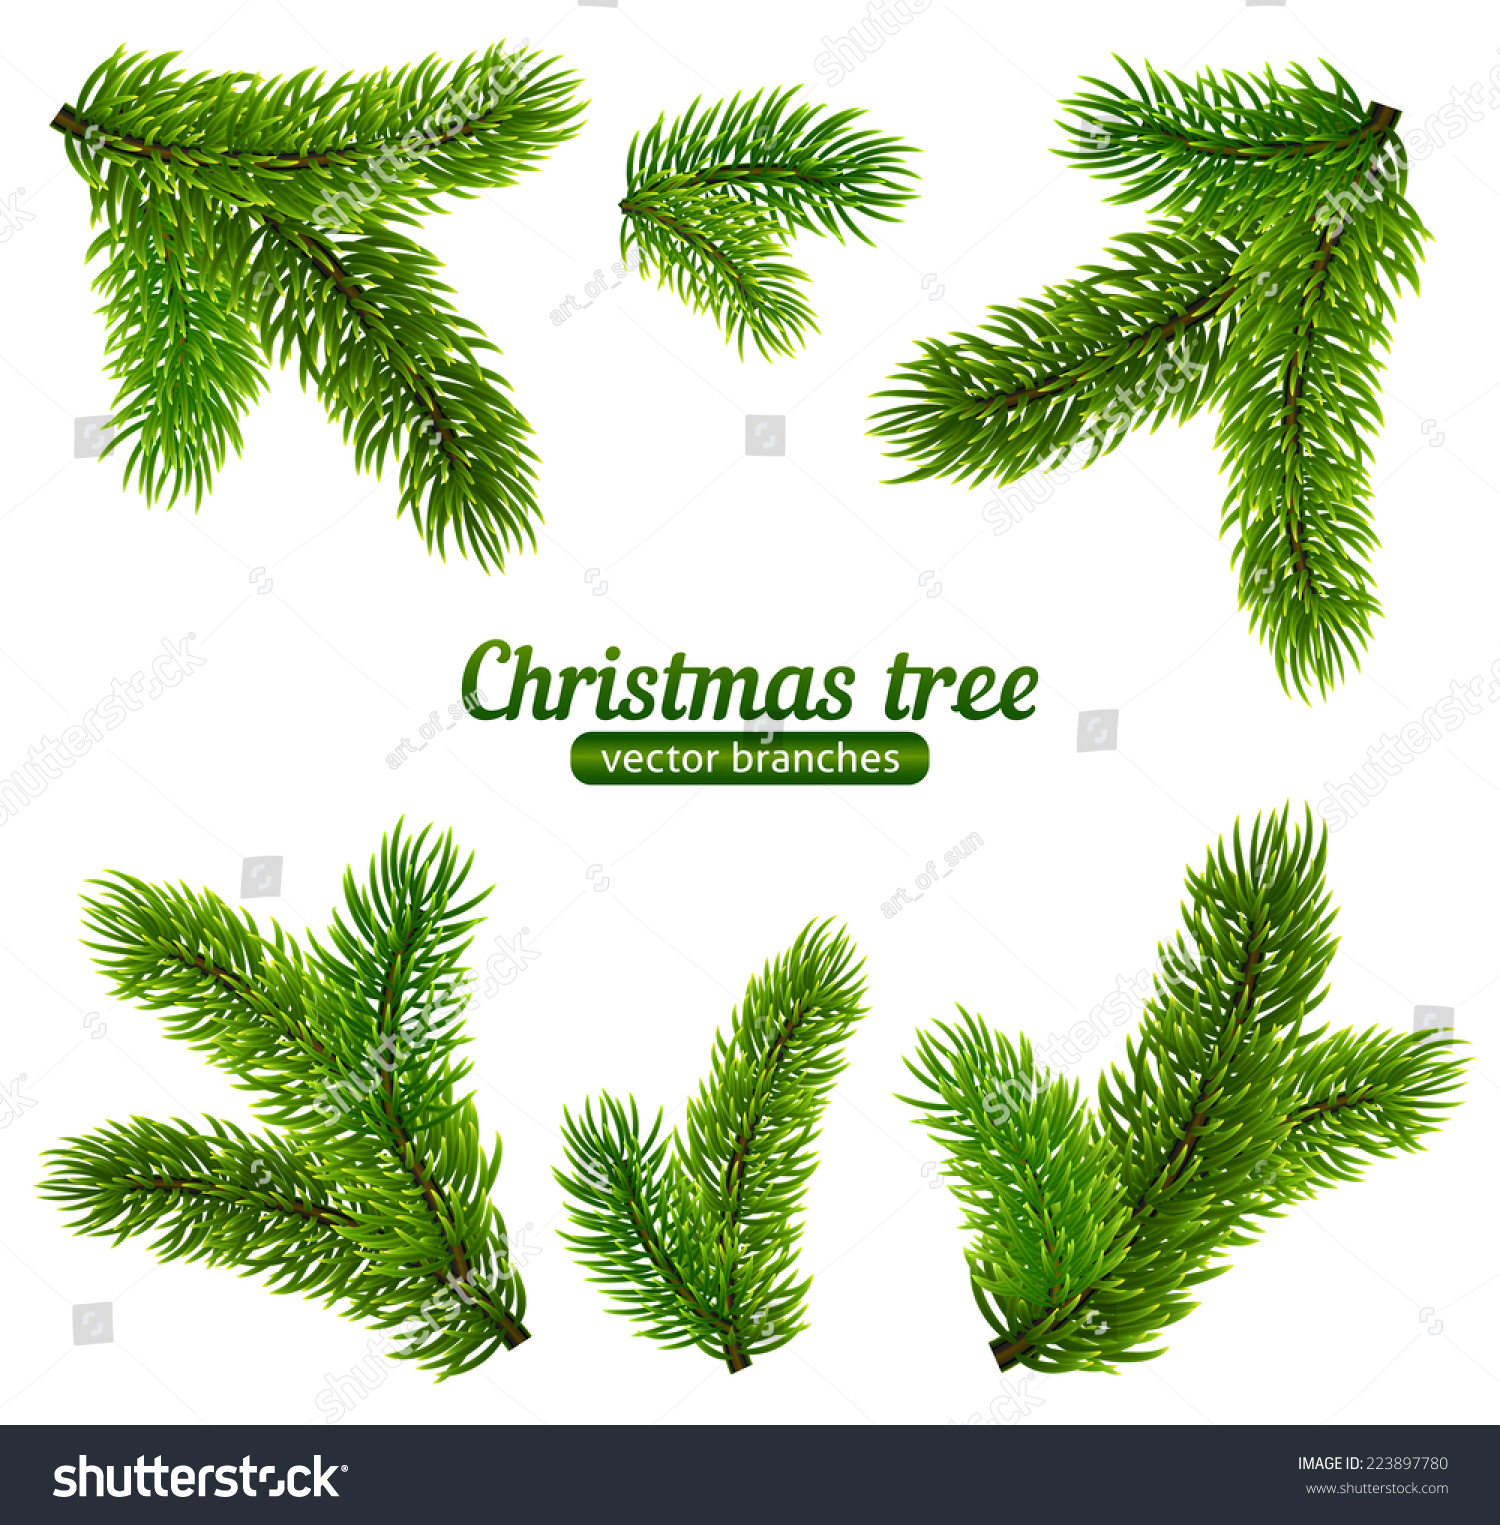 christmas tree branch vector - photo #7